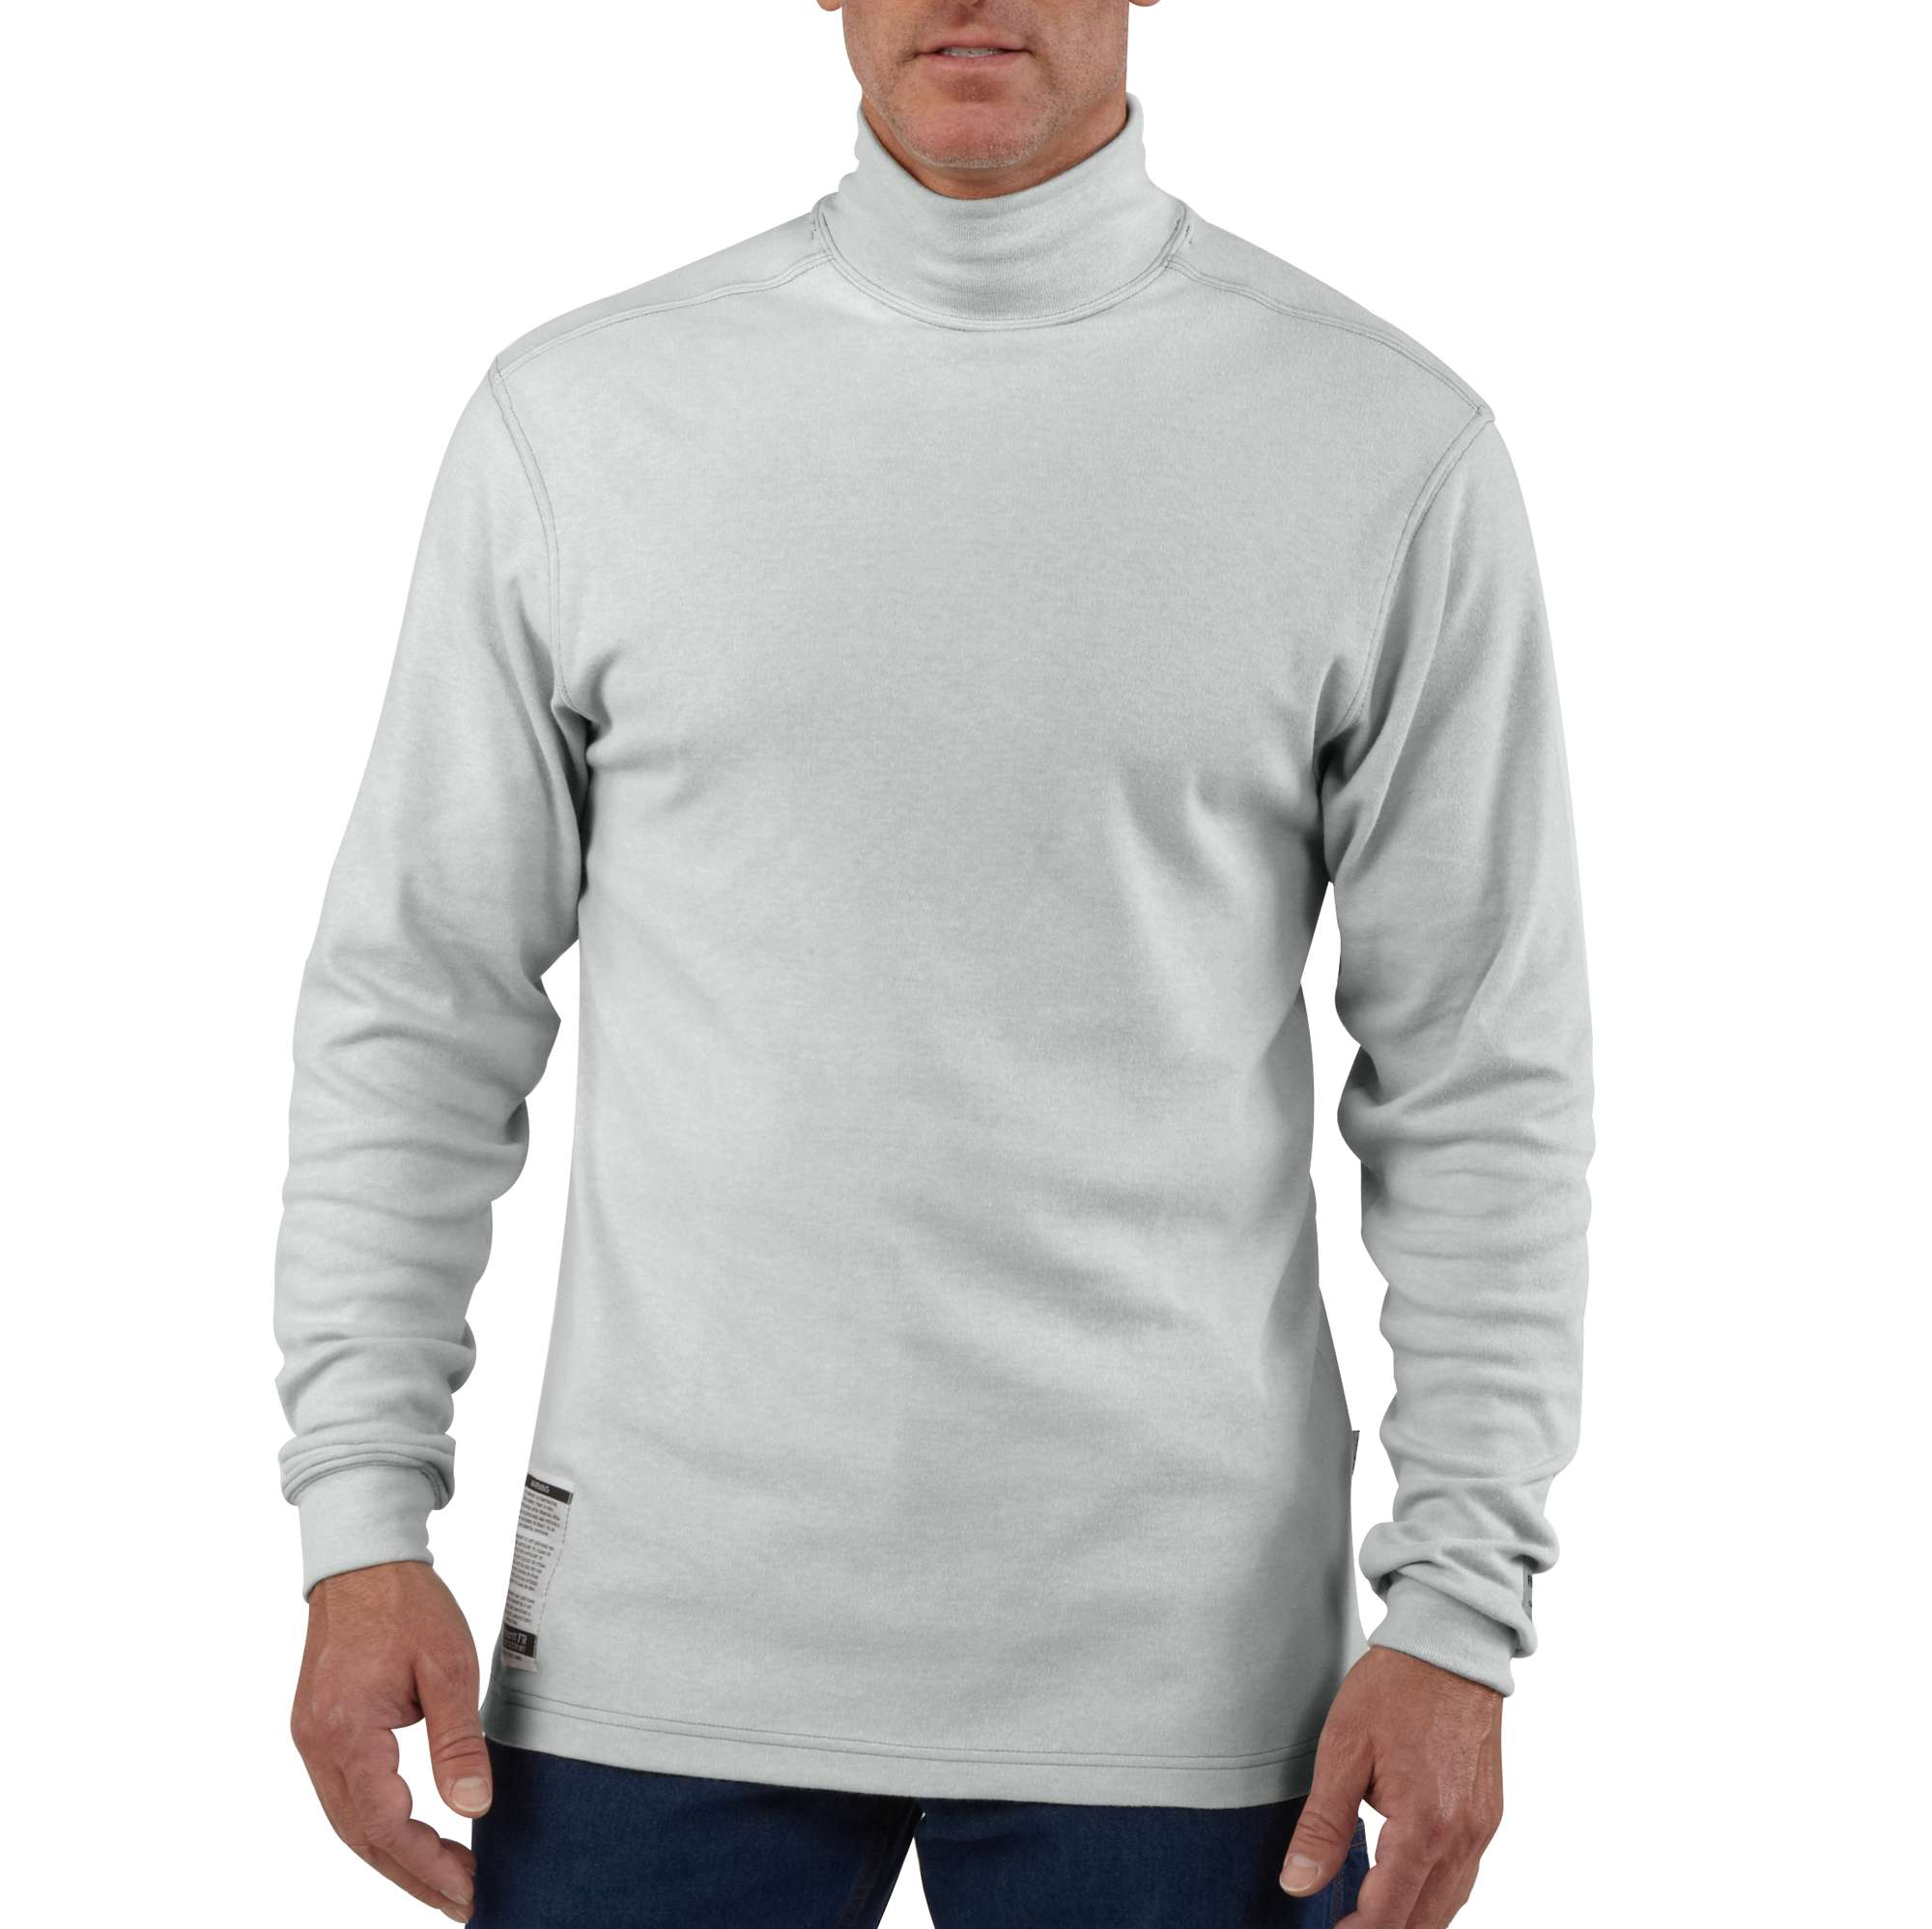 Carhartt Flame-resistant Carhartt Force Cotton Long-sleeve Mock Turtleneck